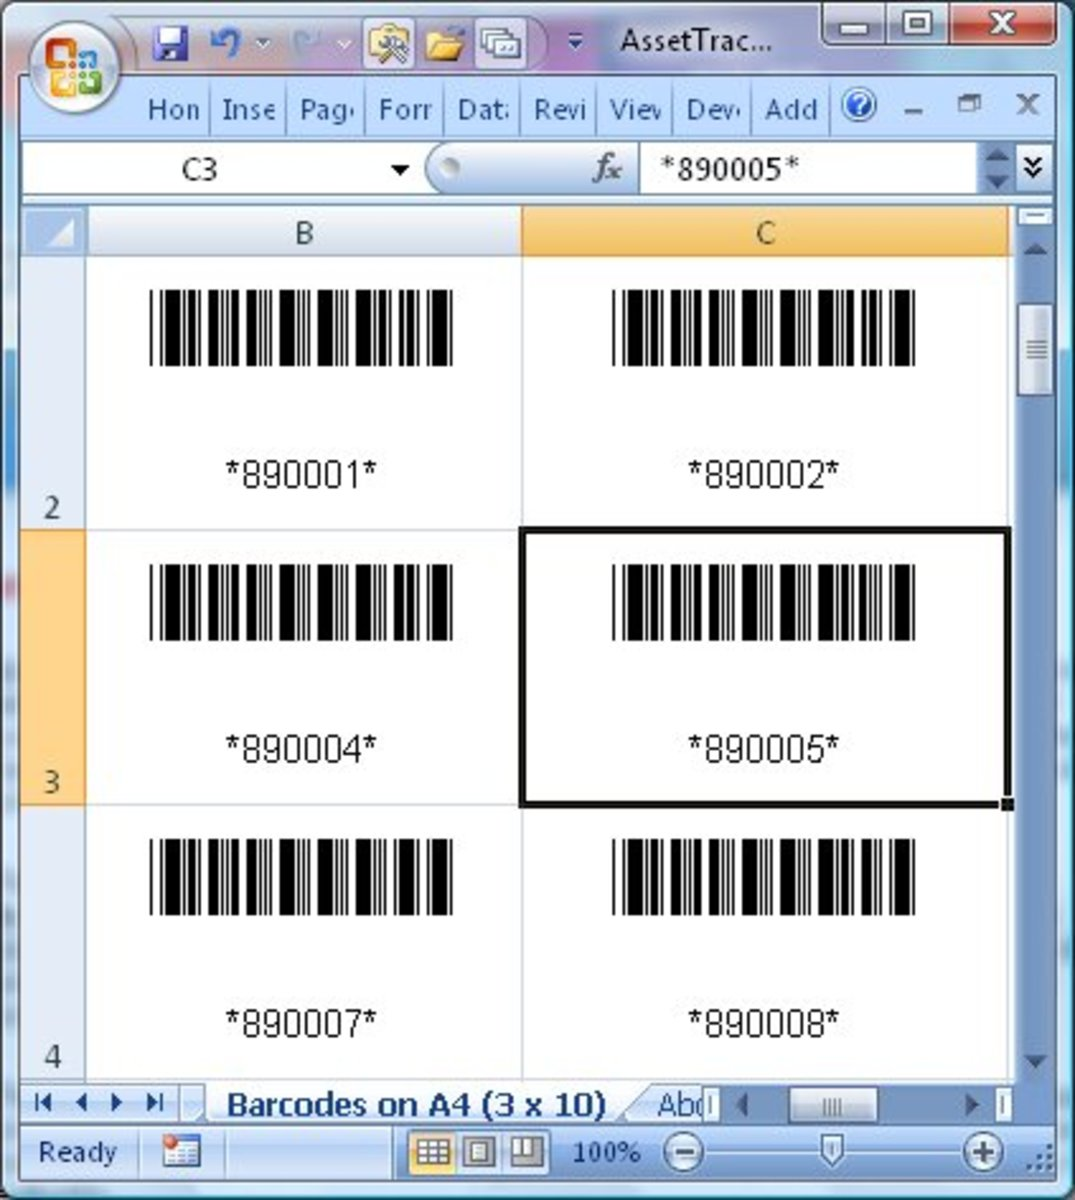 Barcode Assets Tracking – Track Assets for Home Inventory and Small Businesses Using Excel